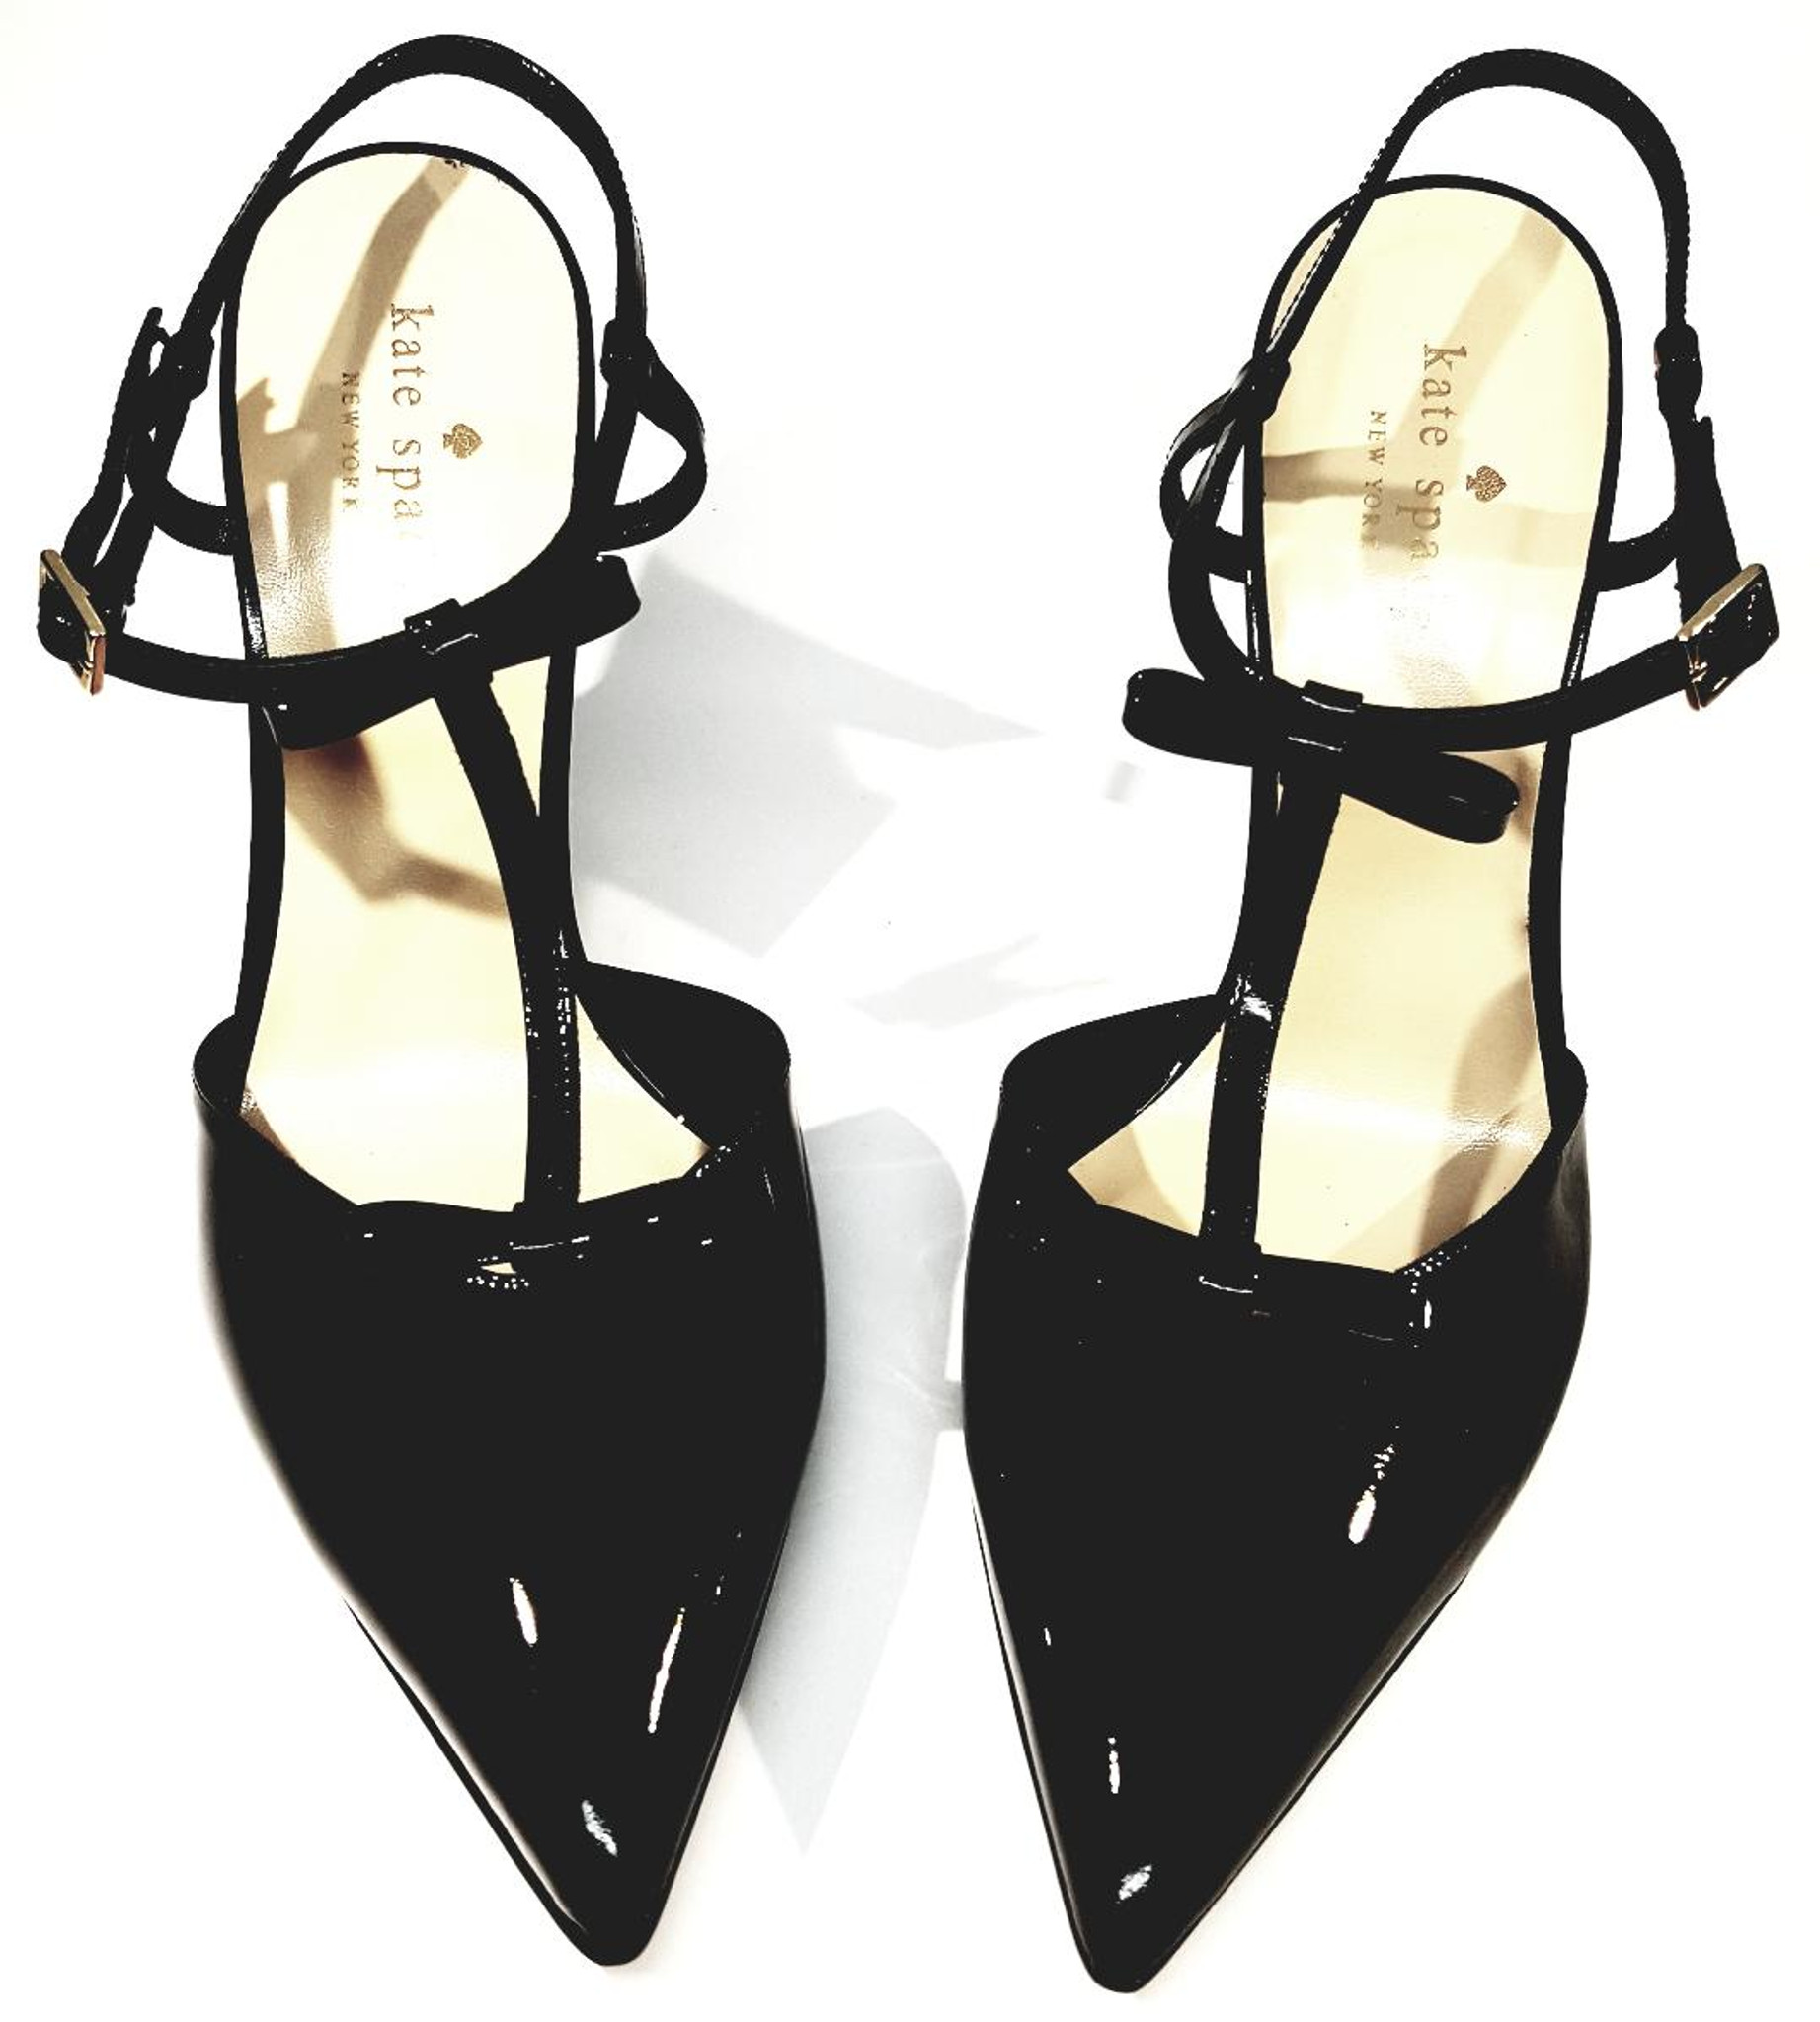 Kate Spade Black Patent Leather Pointed